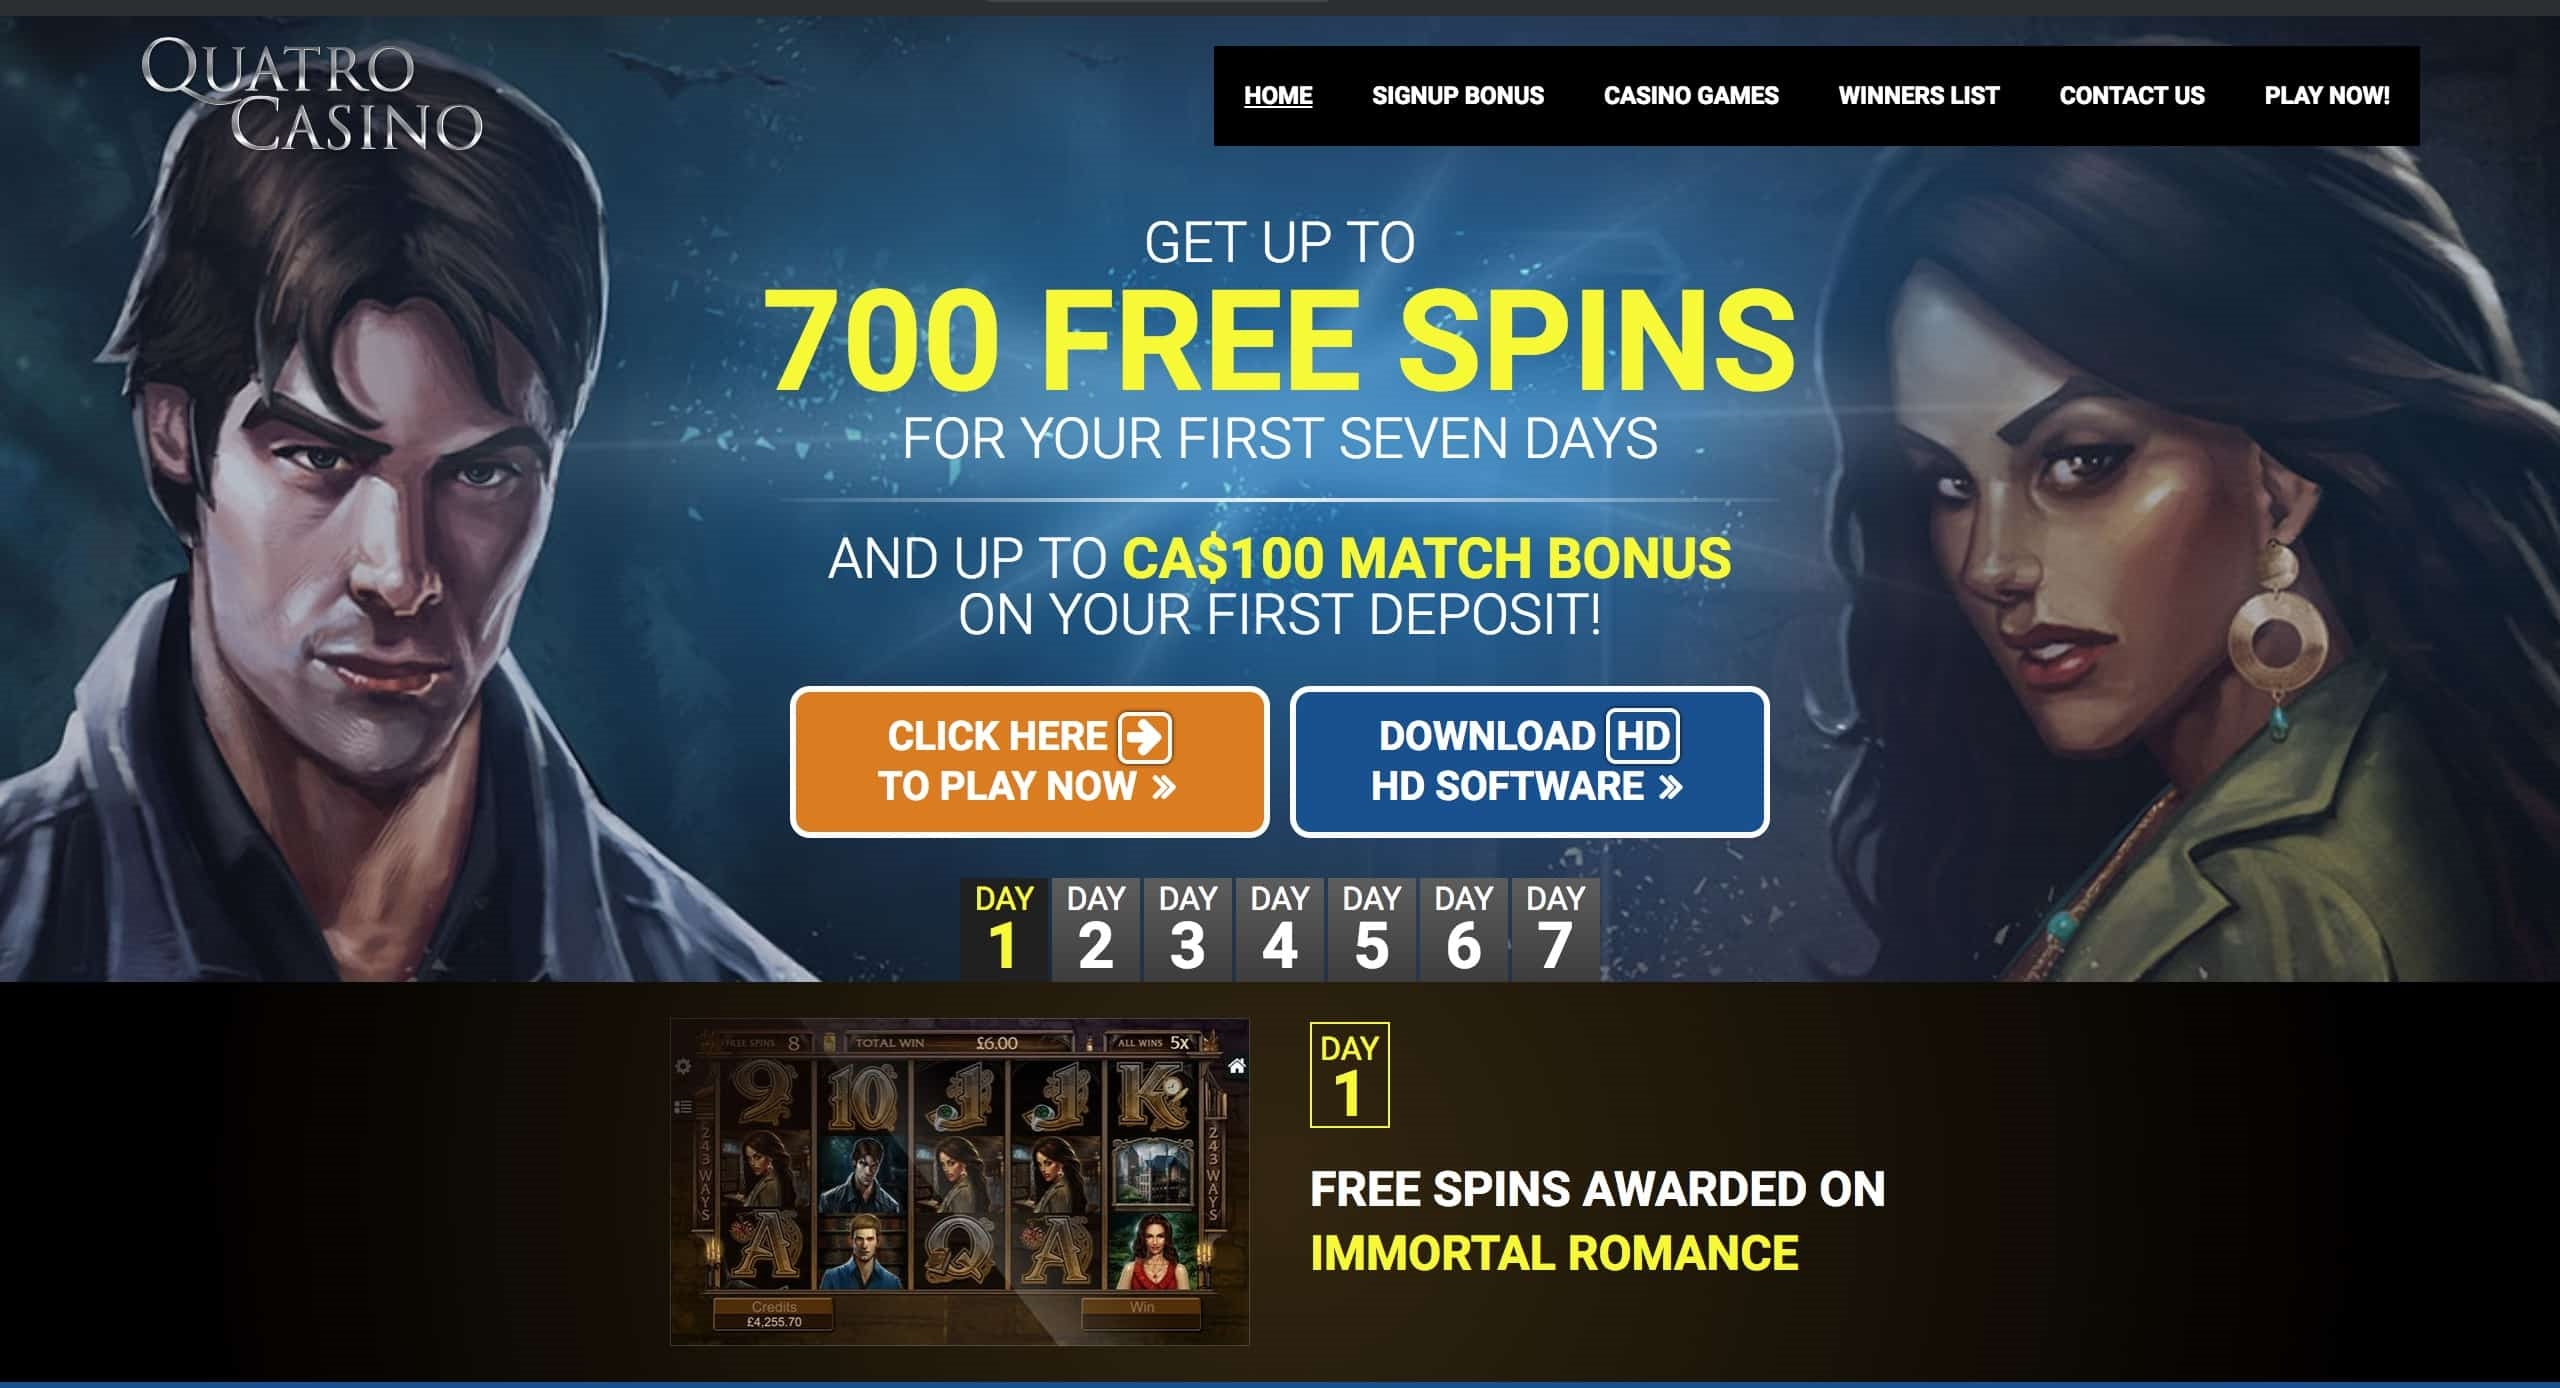 435% Casino Welcome Bonus at bWin